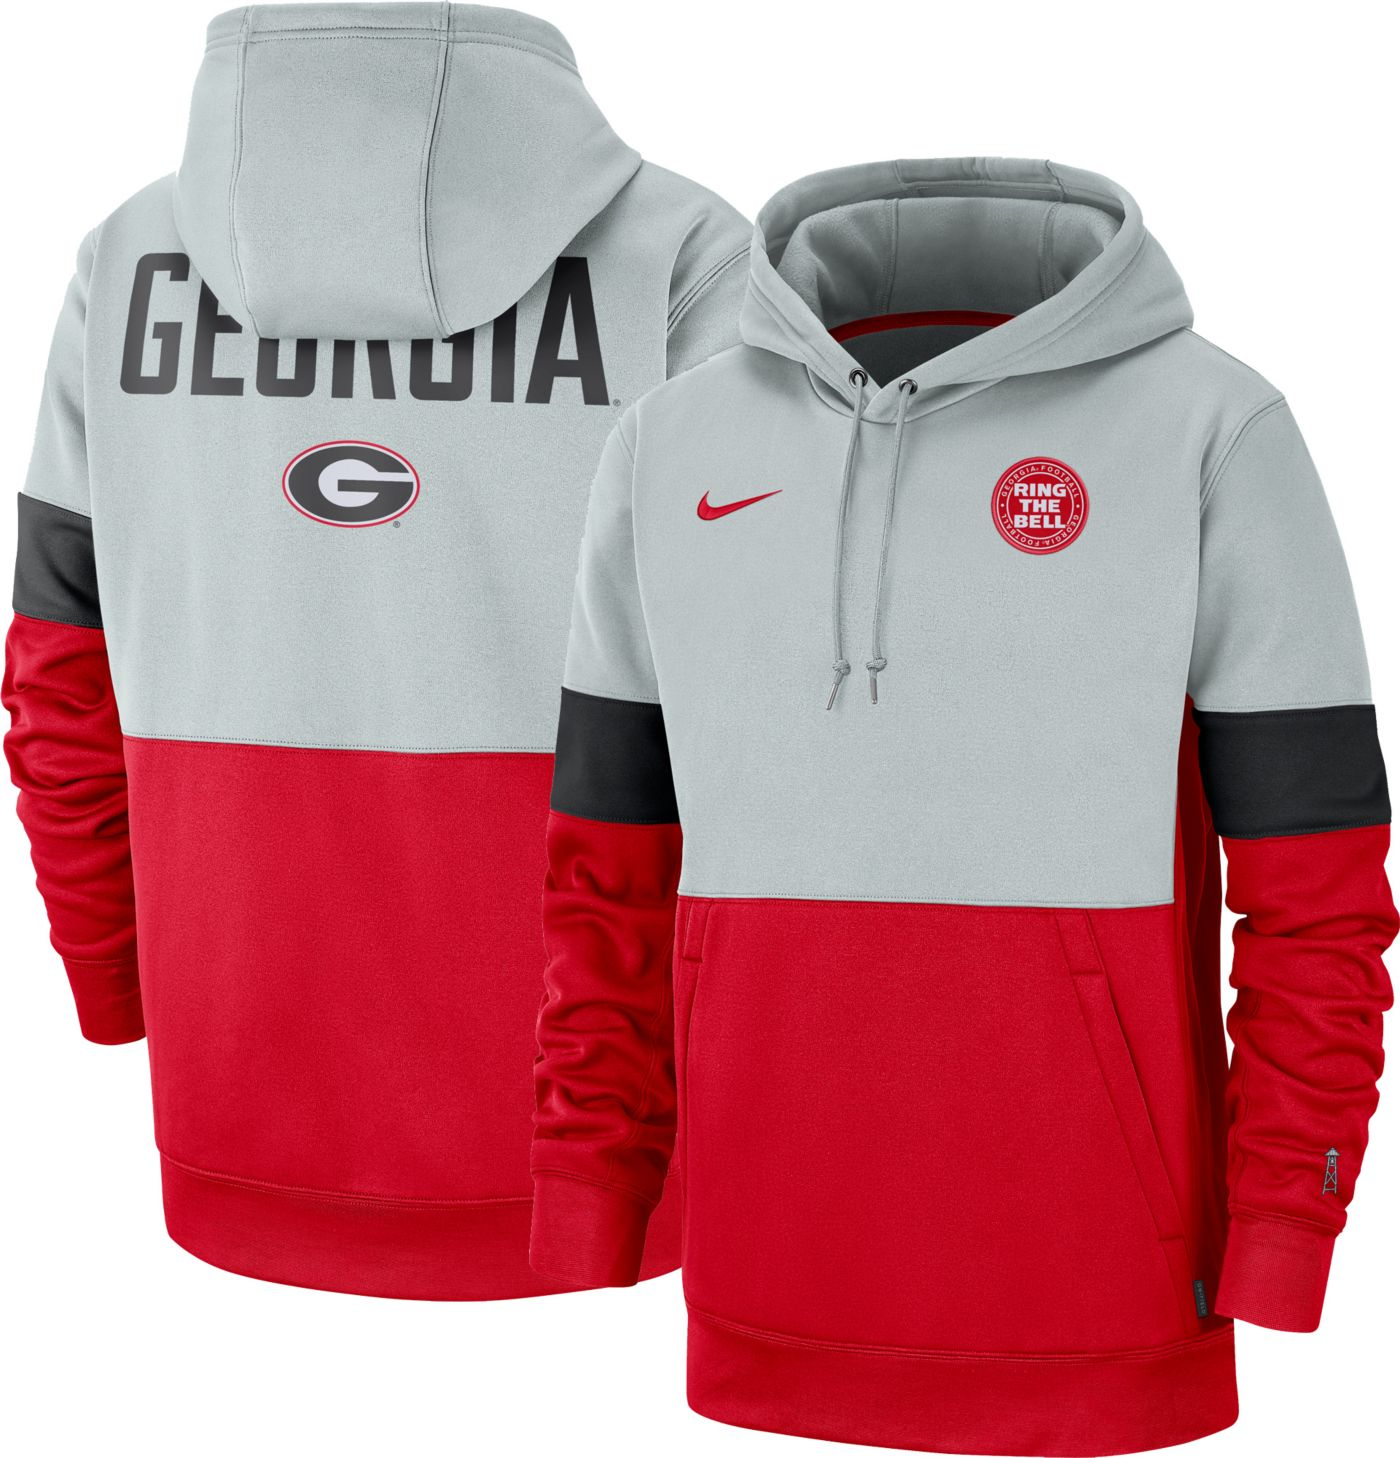 Nike Men's Georgia Bulldogs Grey/Red Rivalry Therma Football Sideline Pullover Hoodie